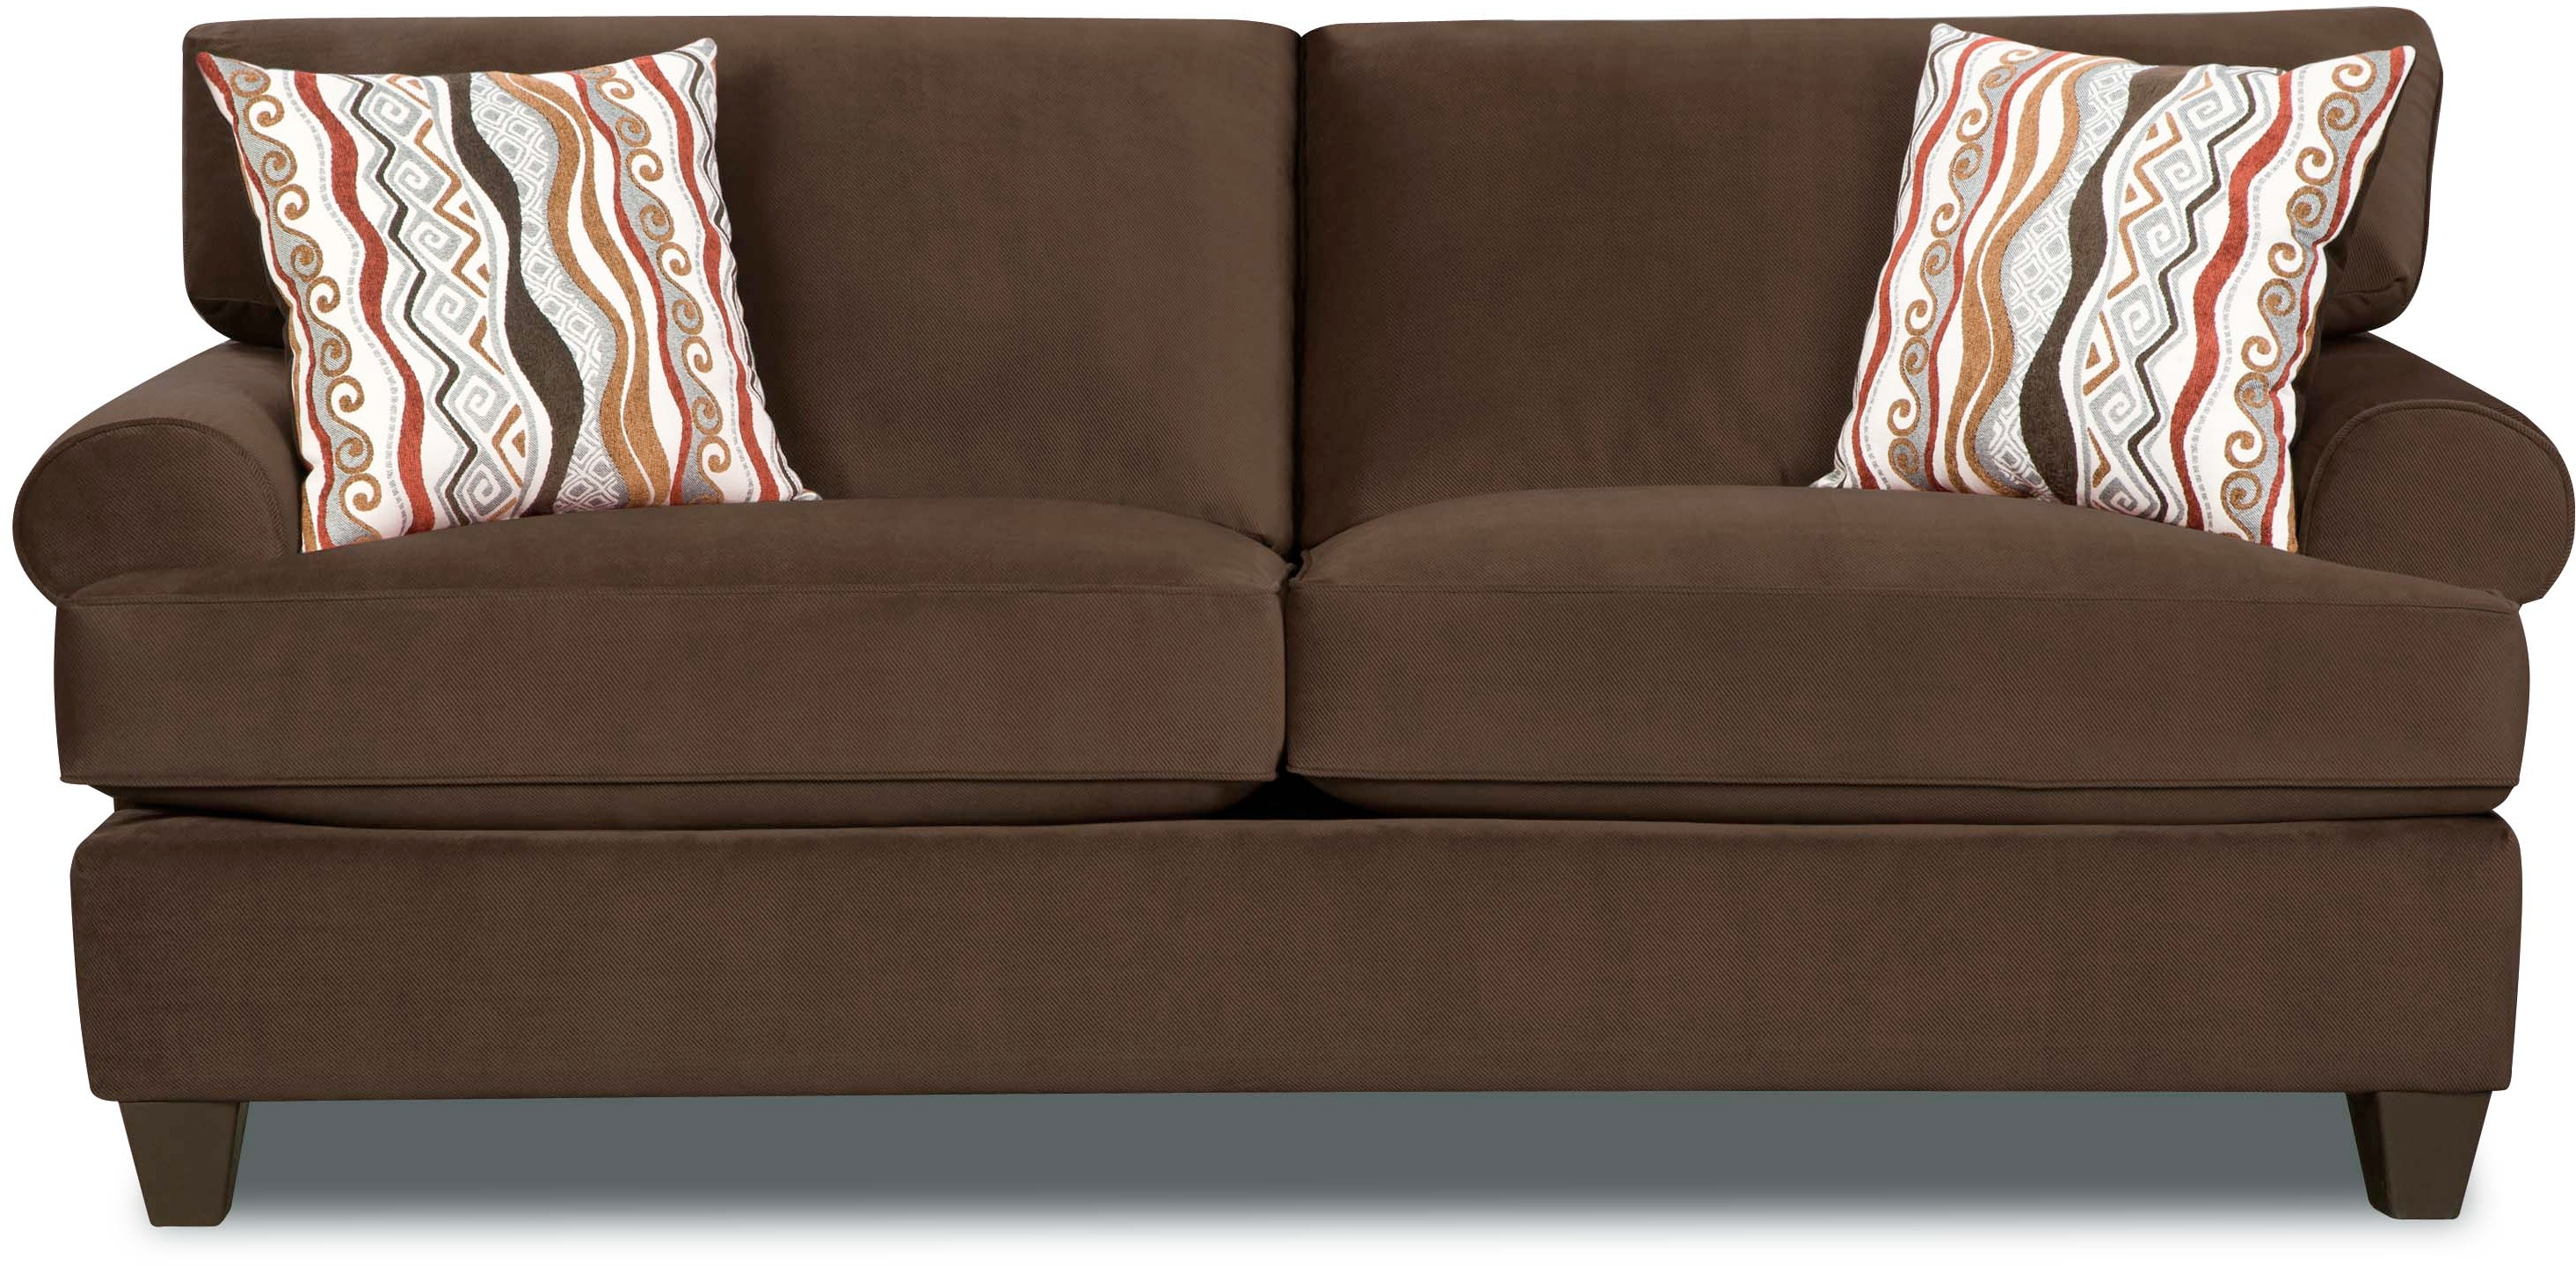 Corinthian Jackpot Chocolate Sofa ~ How To Coordinate Throw Pillows For Sofa And Chairs